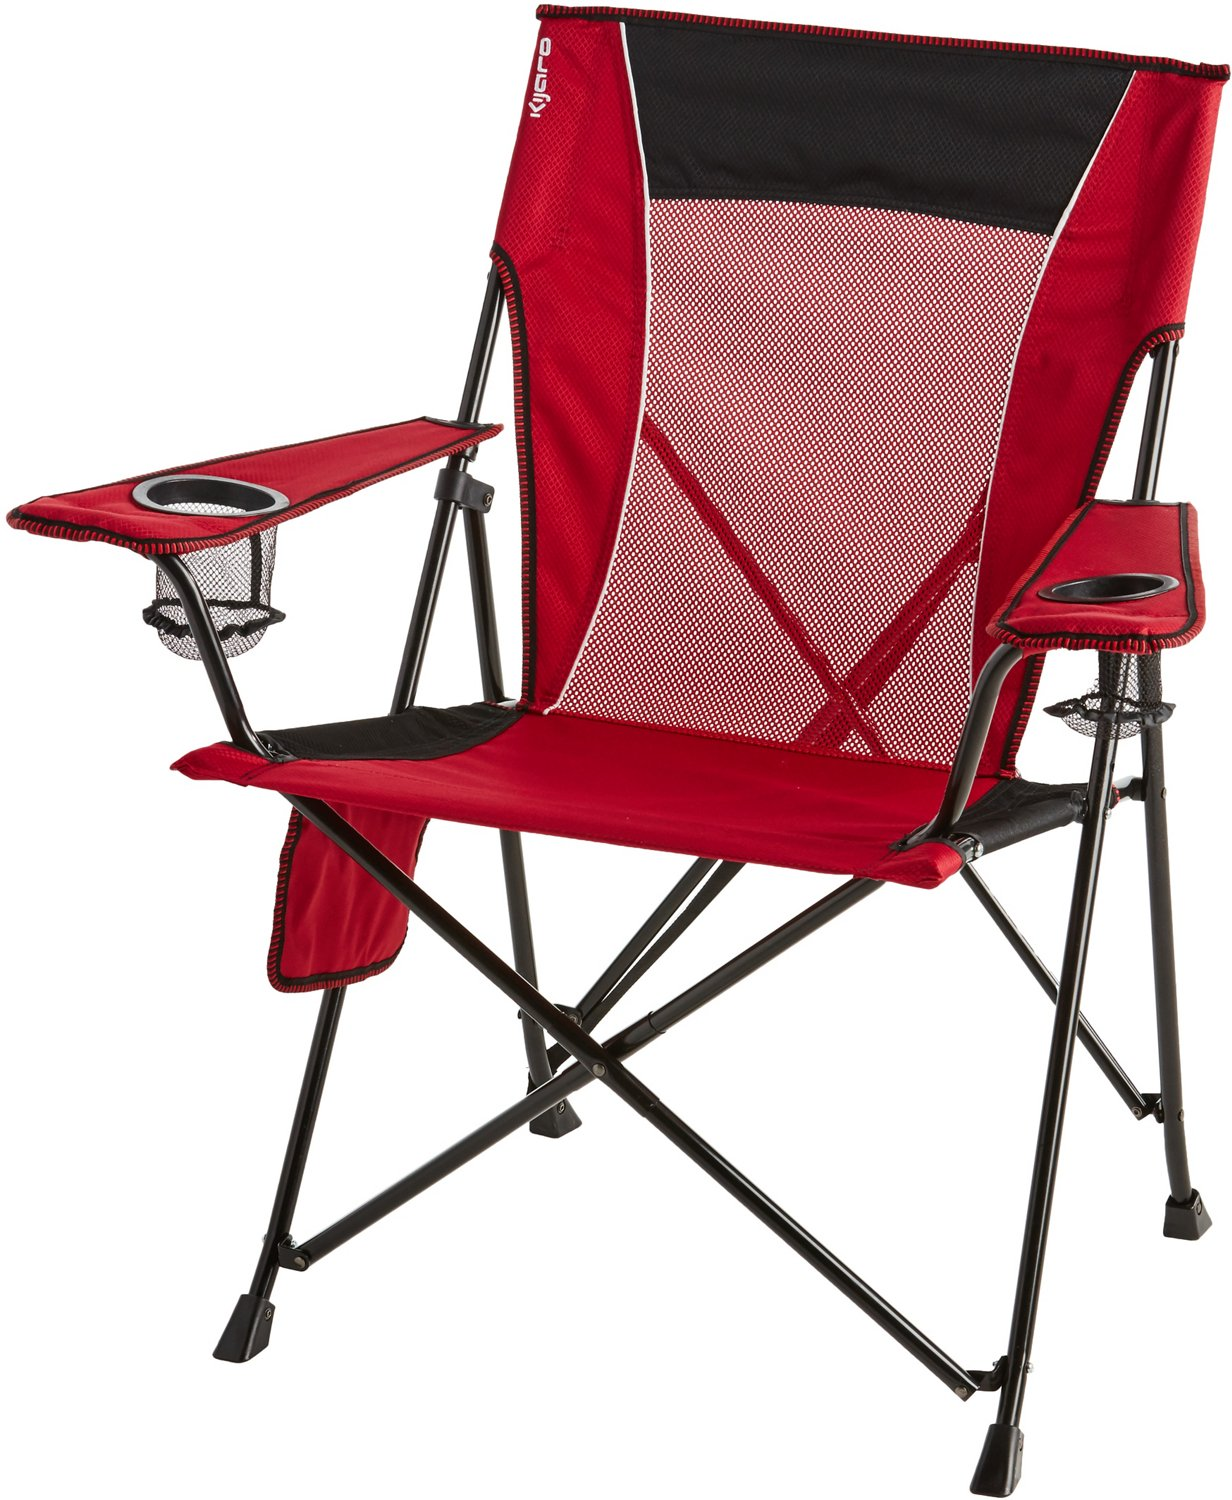 academy sports folding chairs white pool lounge plastic wooden fabric and metal